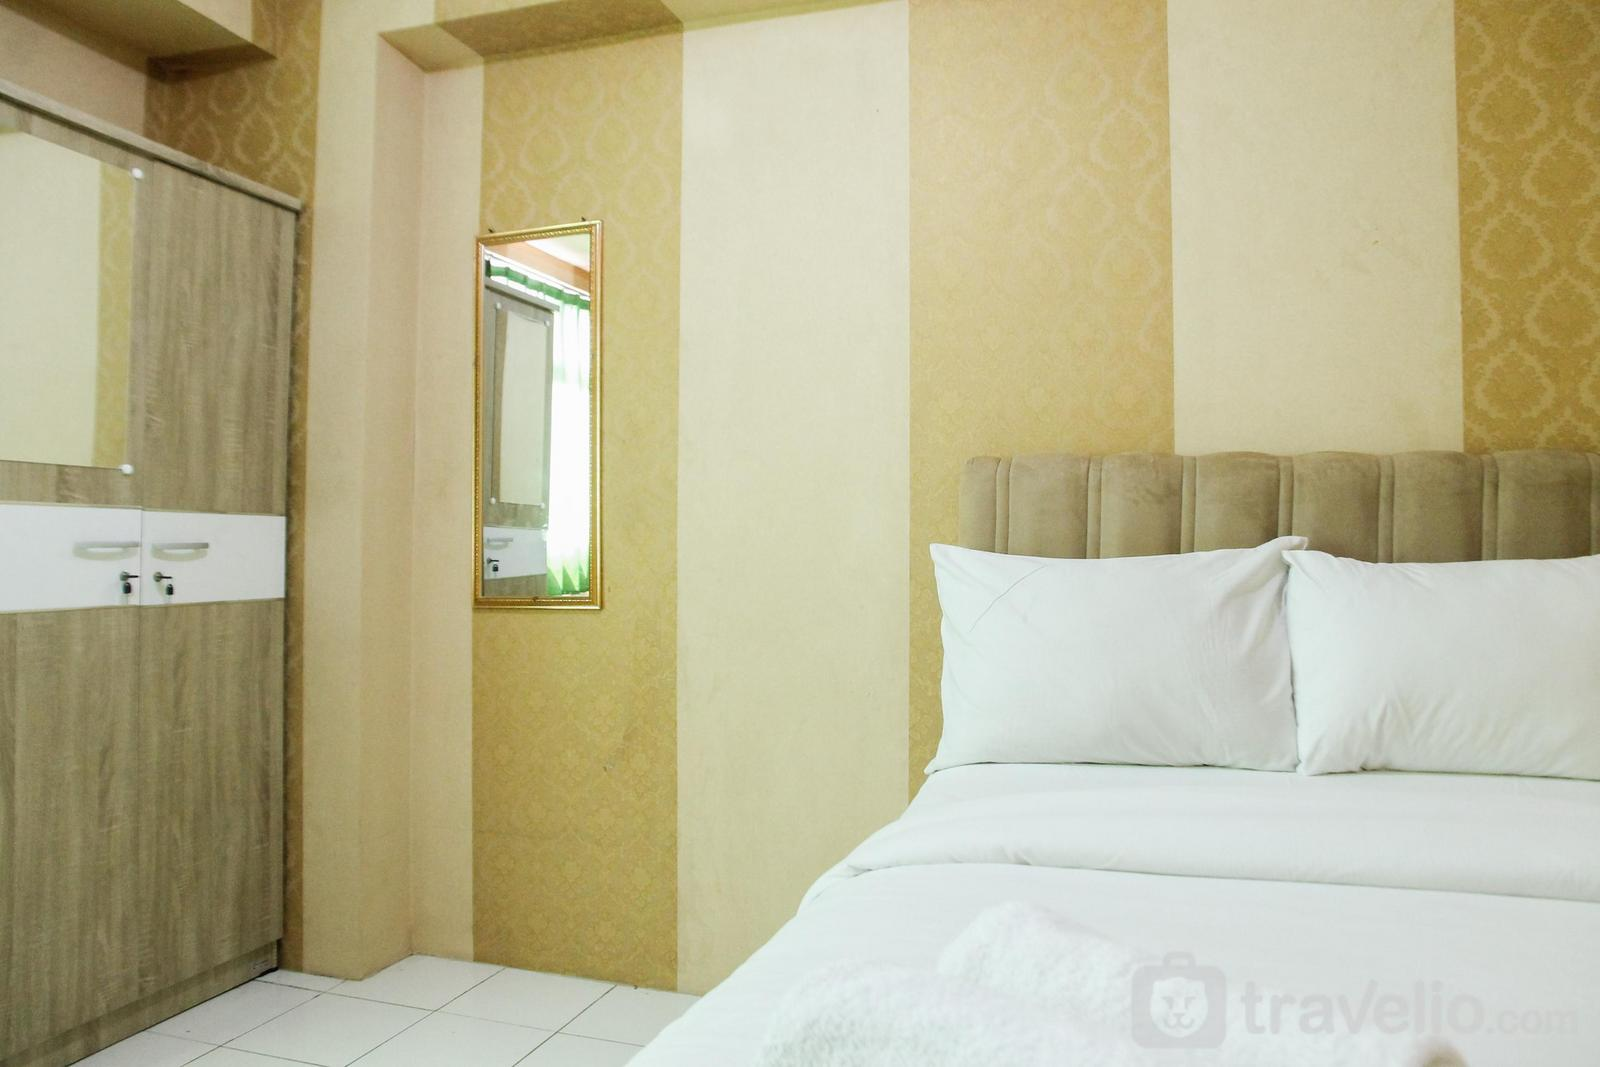 Kalibata City Apartment - Simple 2BR Apartment at Kalibata City Residence By Travelio